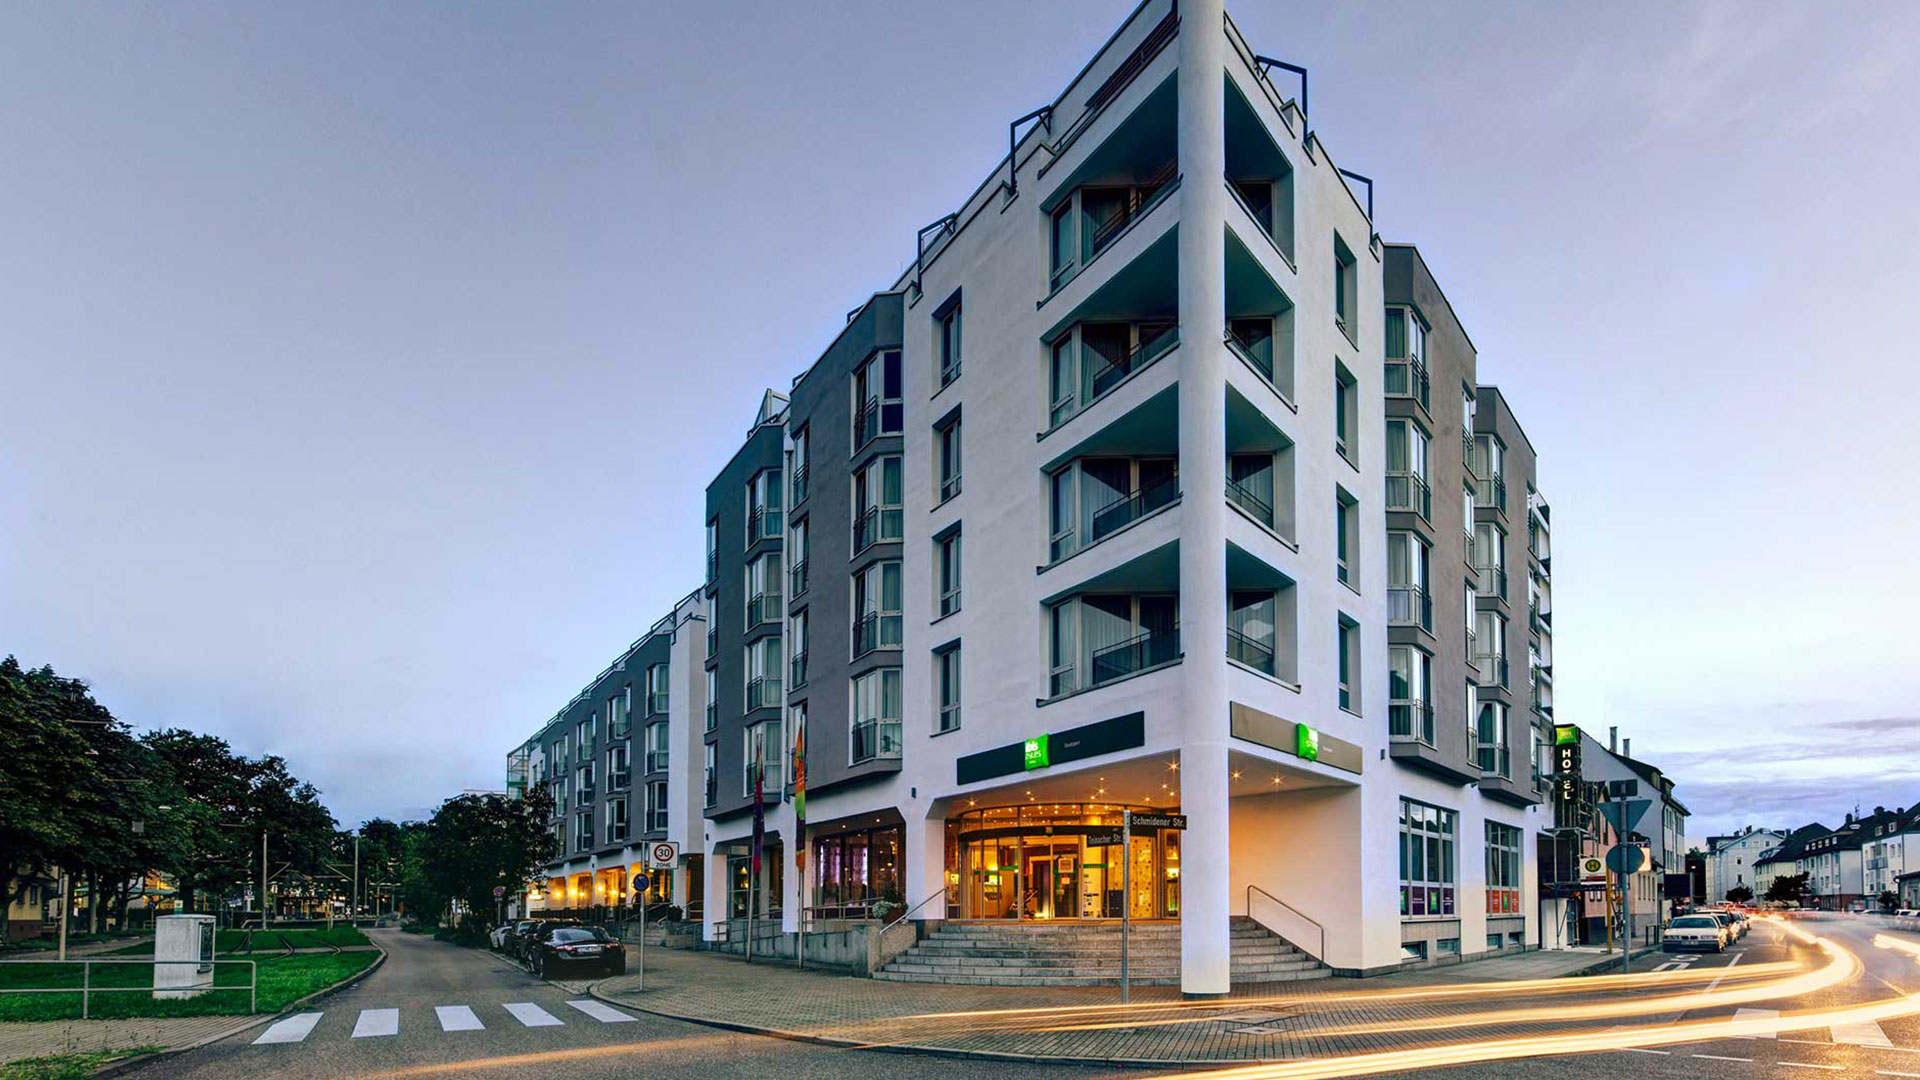 Photo of the exterior view - 01 - ibis Styles Stuttgart